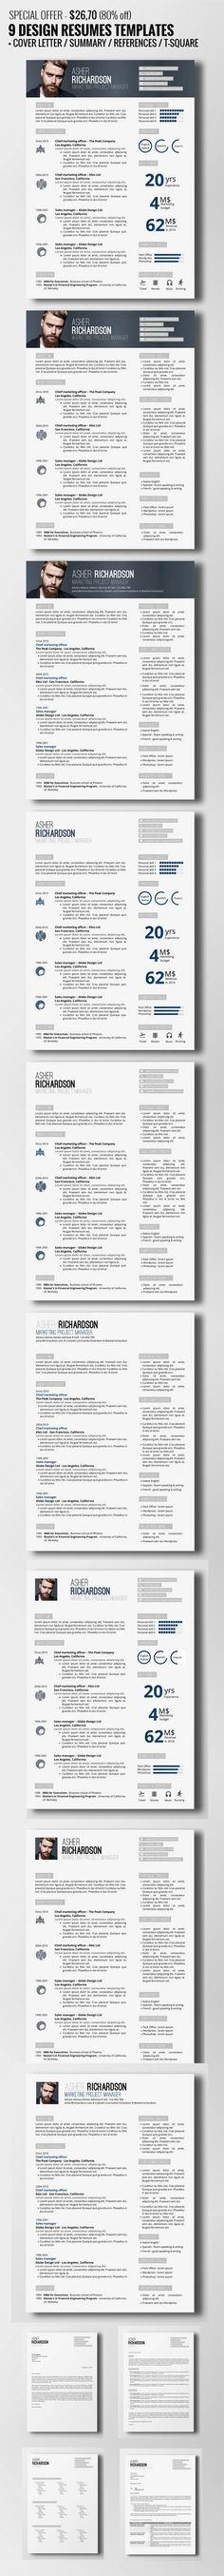 435 best Resume images on Pinterest Resume design, Design resume - experience resume template